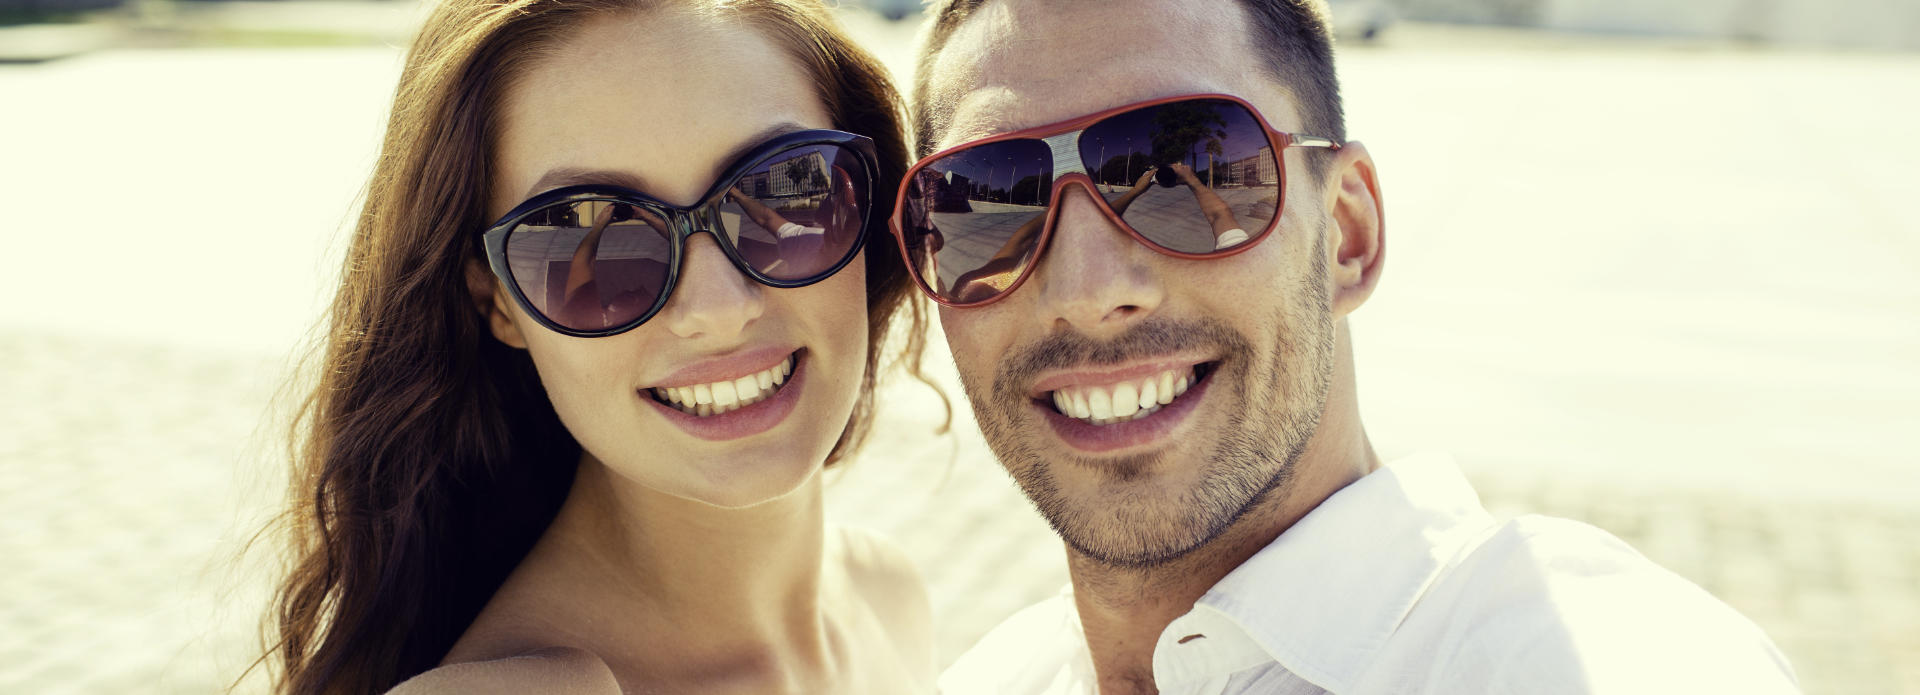 happy couple in sunglasses, beautiful people